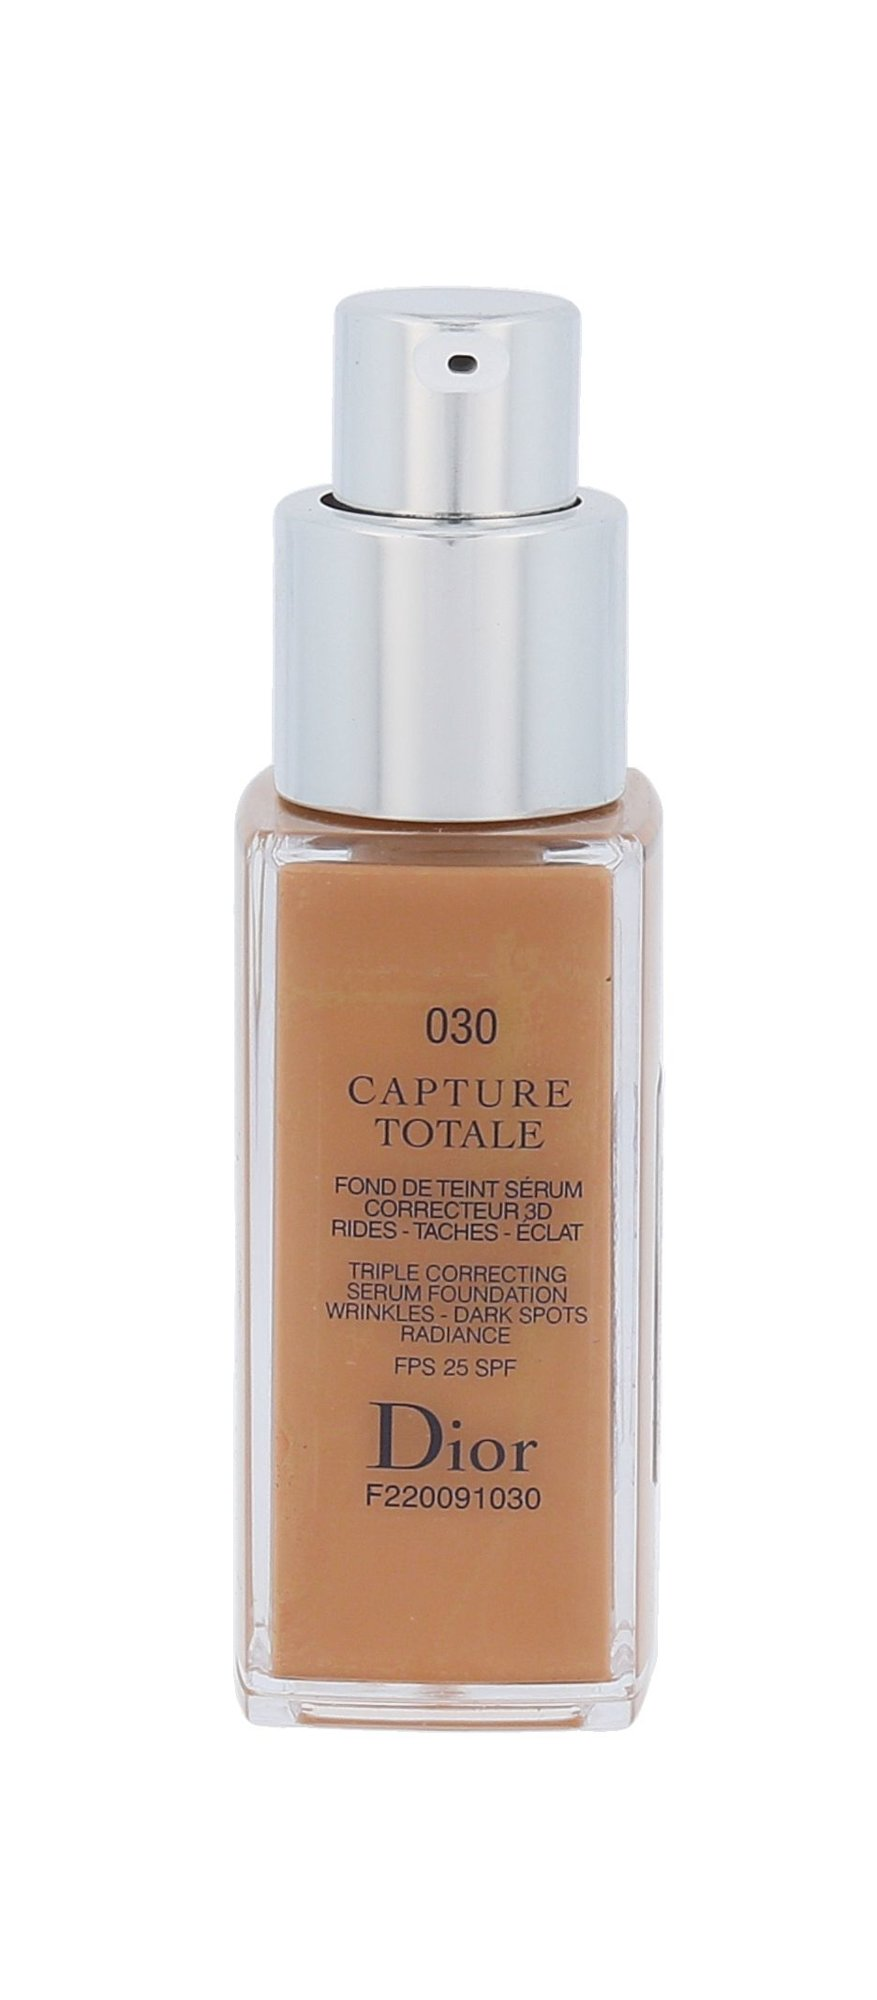 Christian Dior Capture Totale Cosmetic 20ml 030 Medium Beige